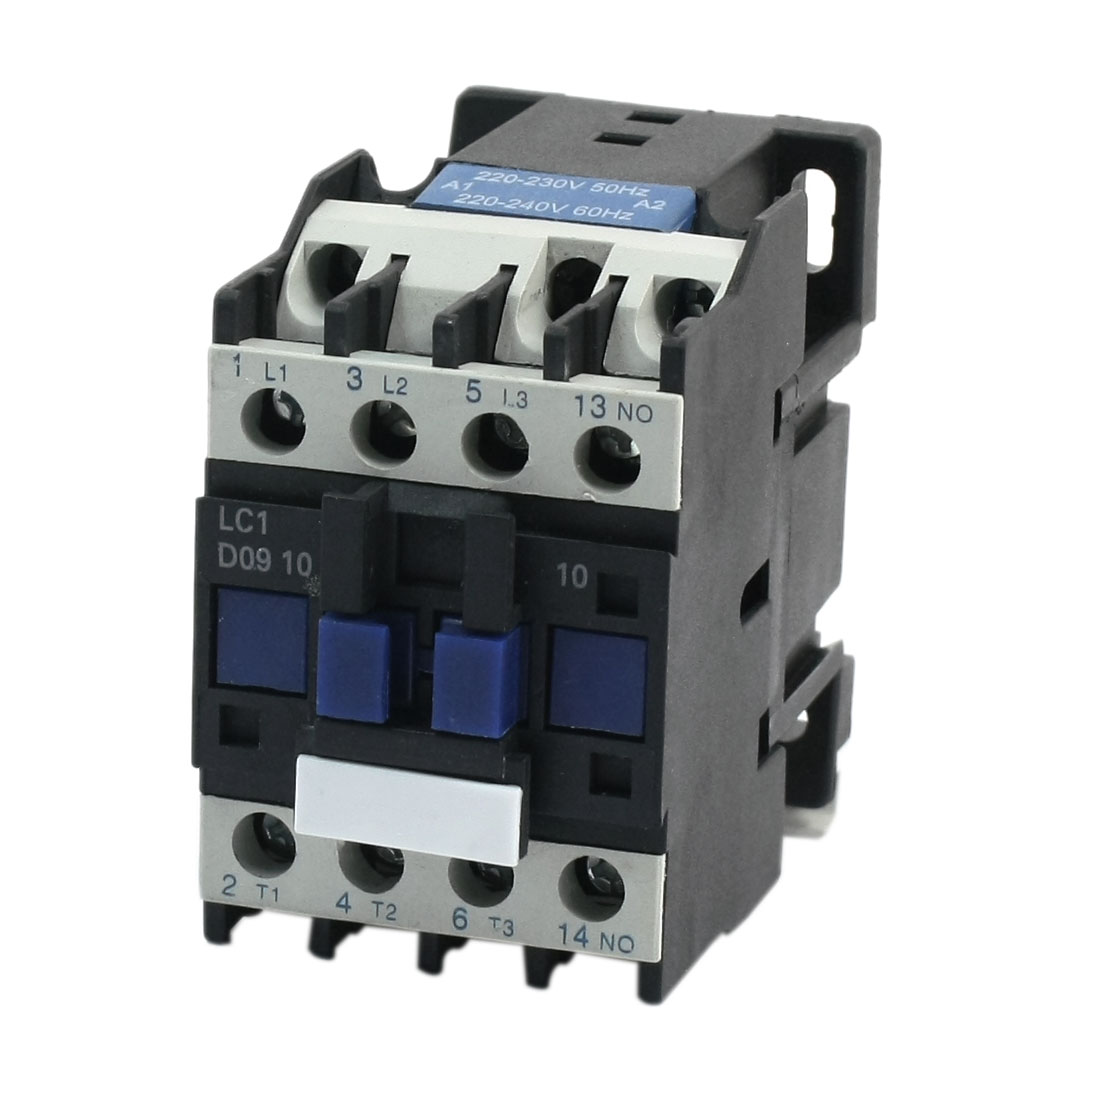 LC1-D09 AC 220V Coil 35mm DIN Rail Mounting 11 Screw Terminals 3-Phase 3-Pole Electric Power Contactor